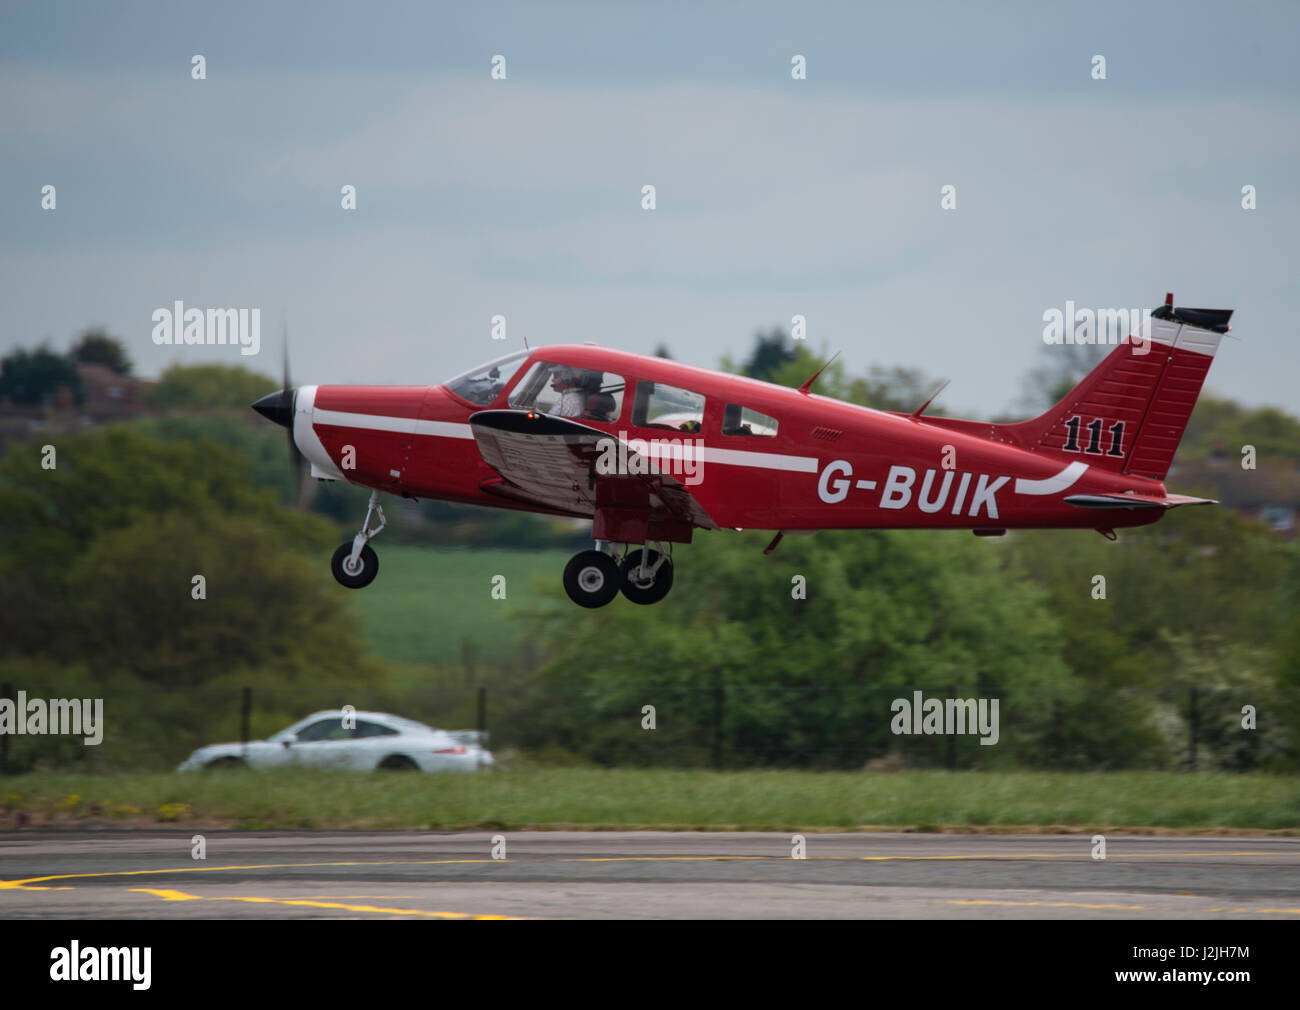 Piper PA-28-161 G-BUIK takes off from North Weald airfield - Stock Image